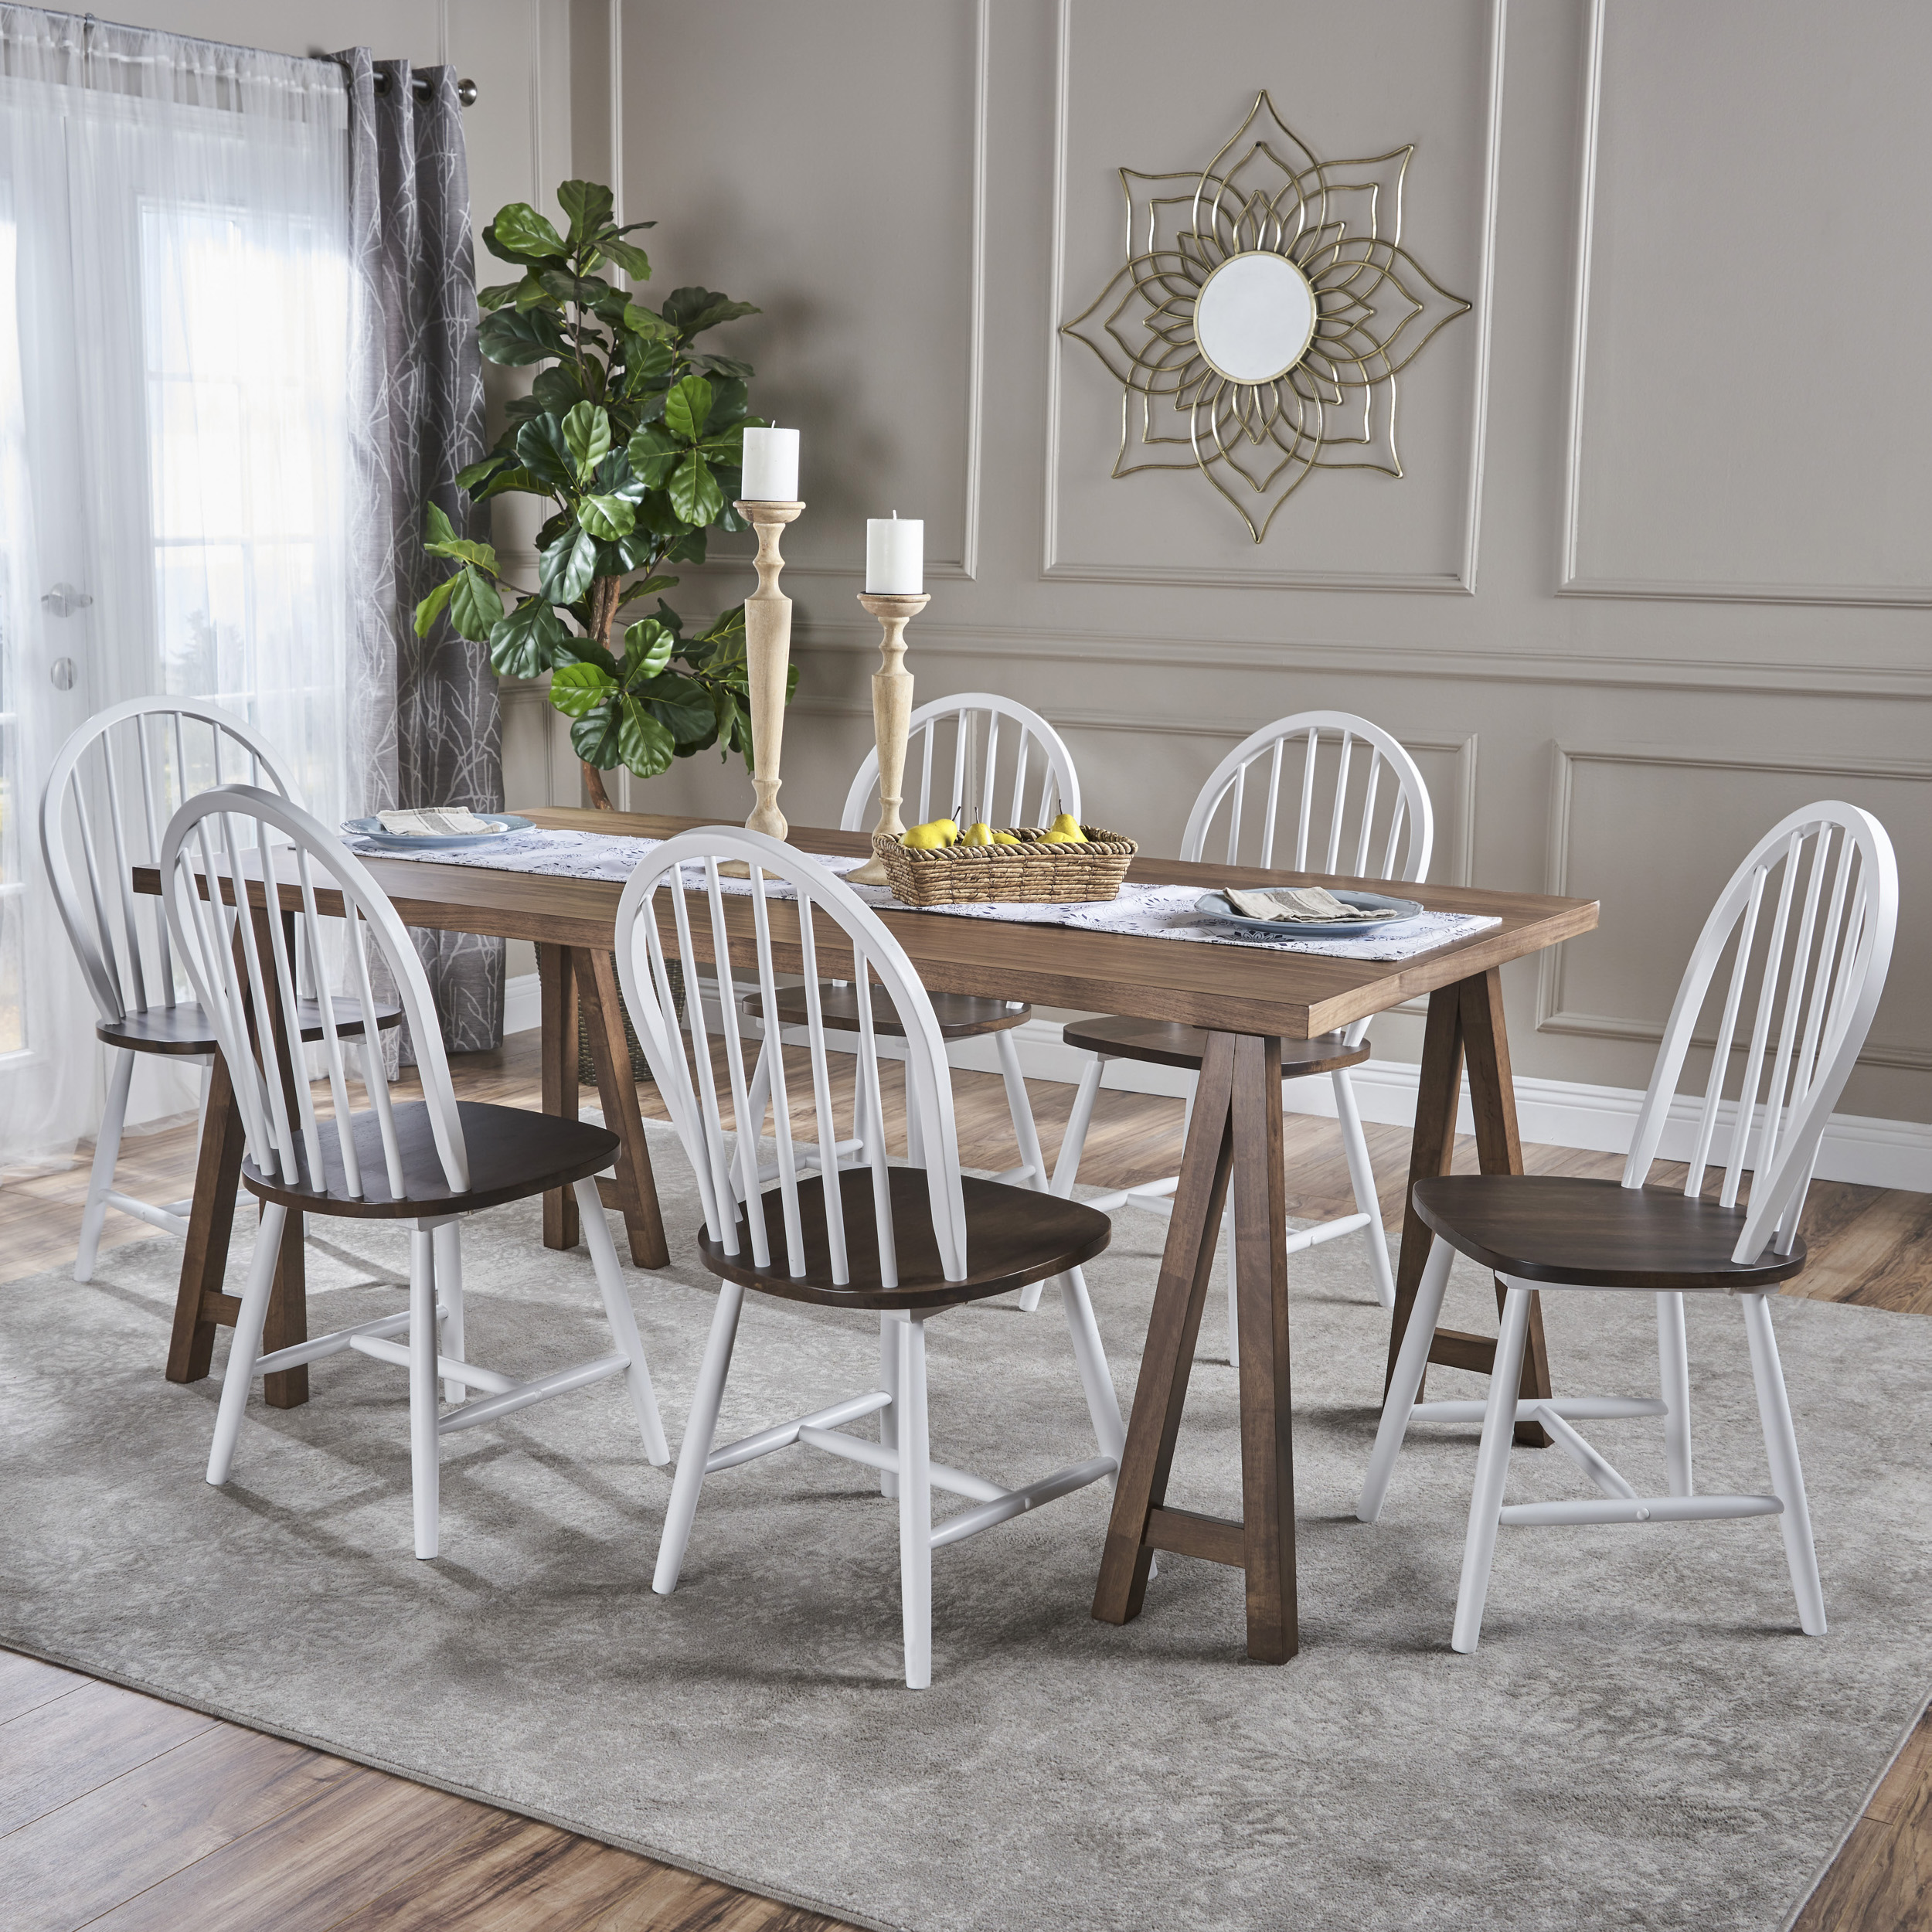 Angela farmhouse cottage 7 piece faux wood dining set with rubberwood chairs natural walnut and white walmart com